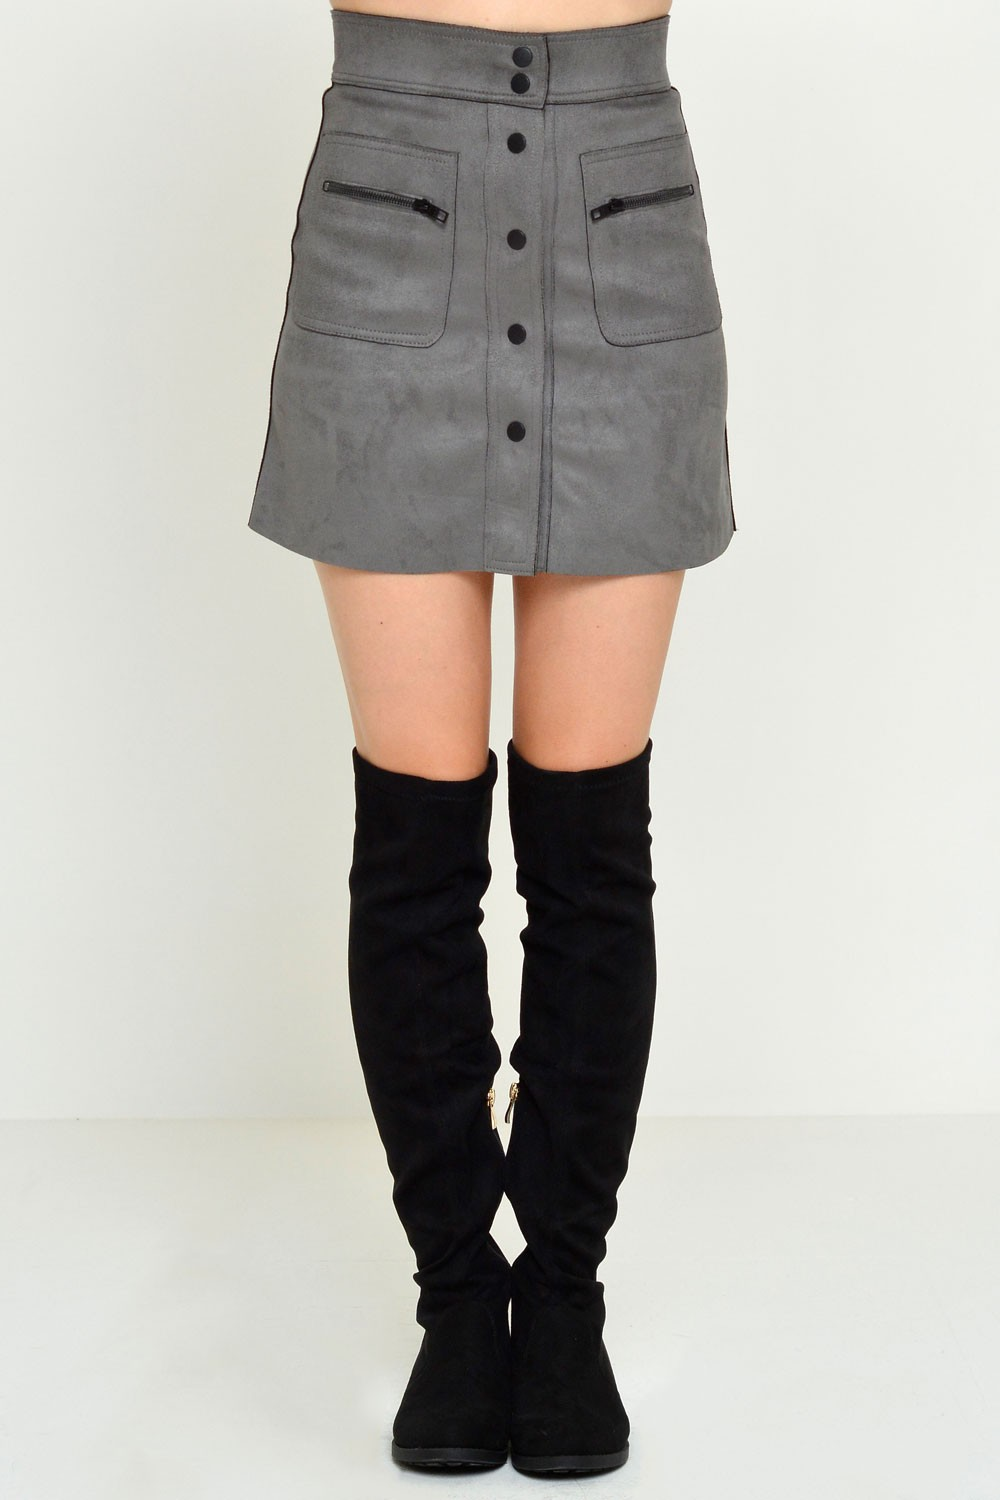 Olivia Bonded Faux Suede Skirt in Grey